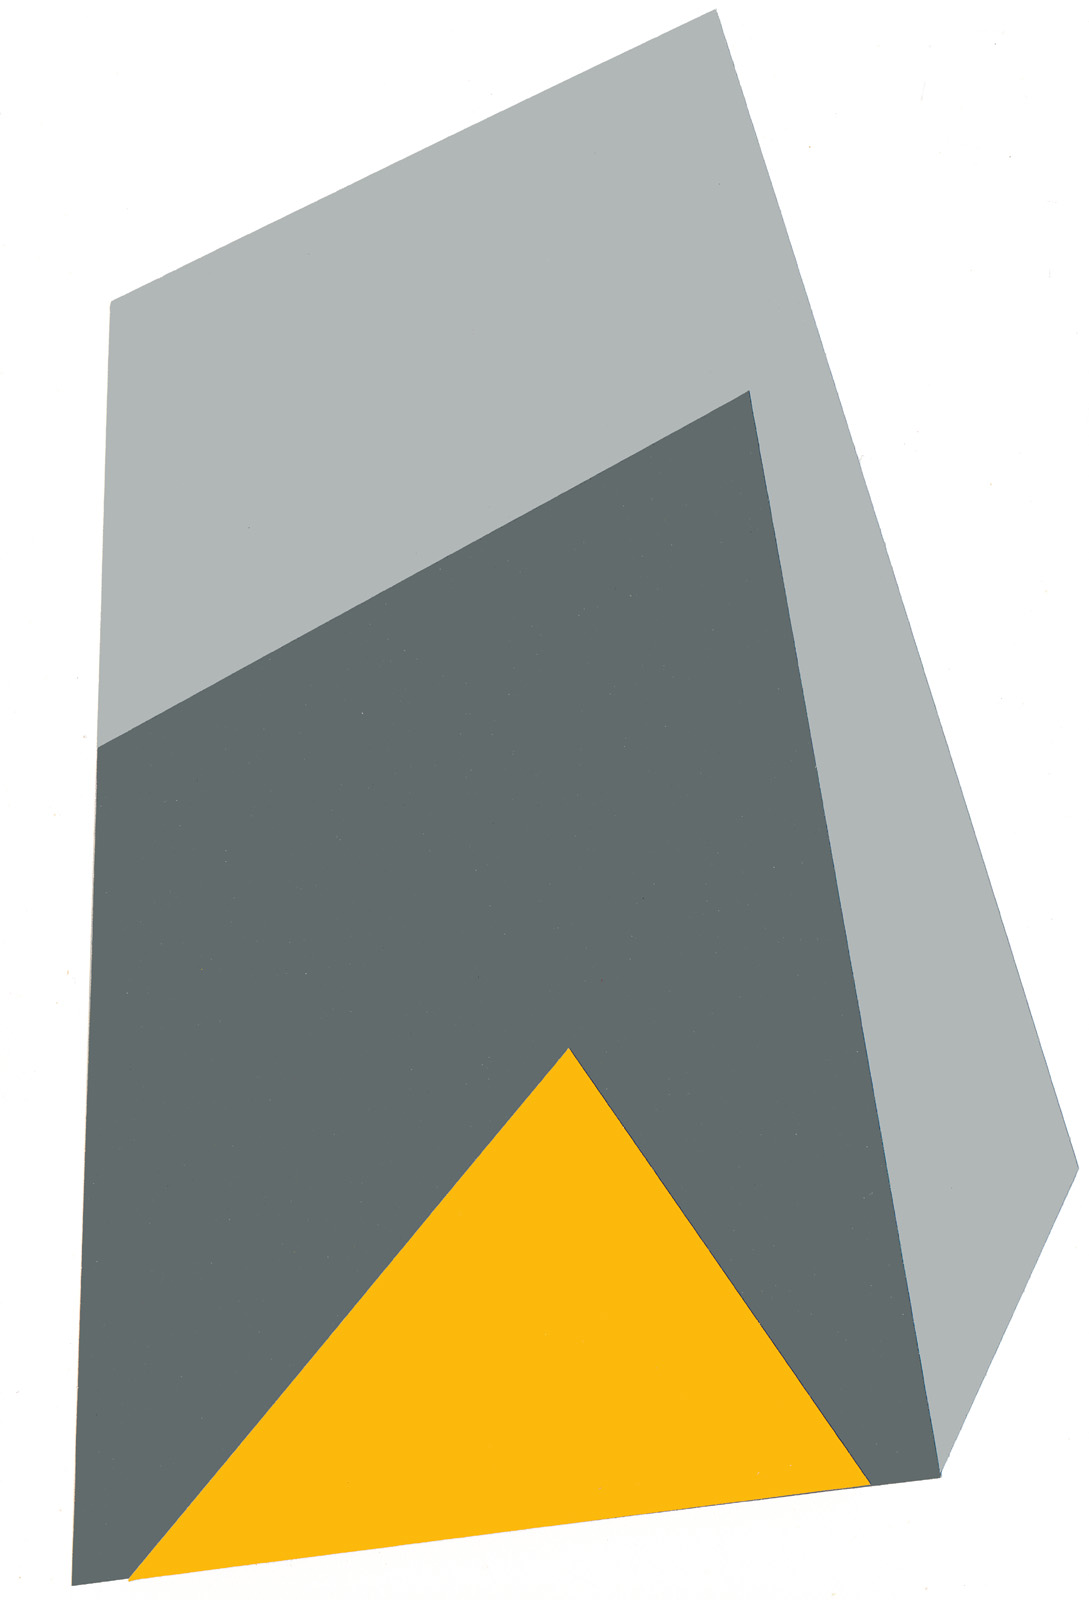 In the Mountains, cut paper collage, Mike Tedder